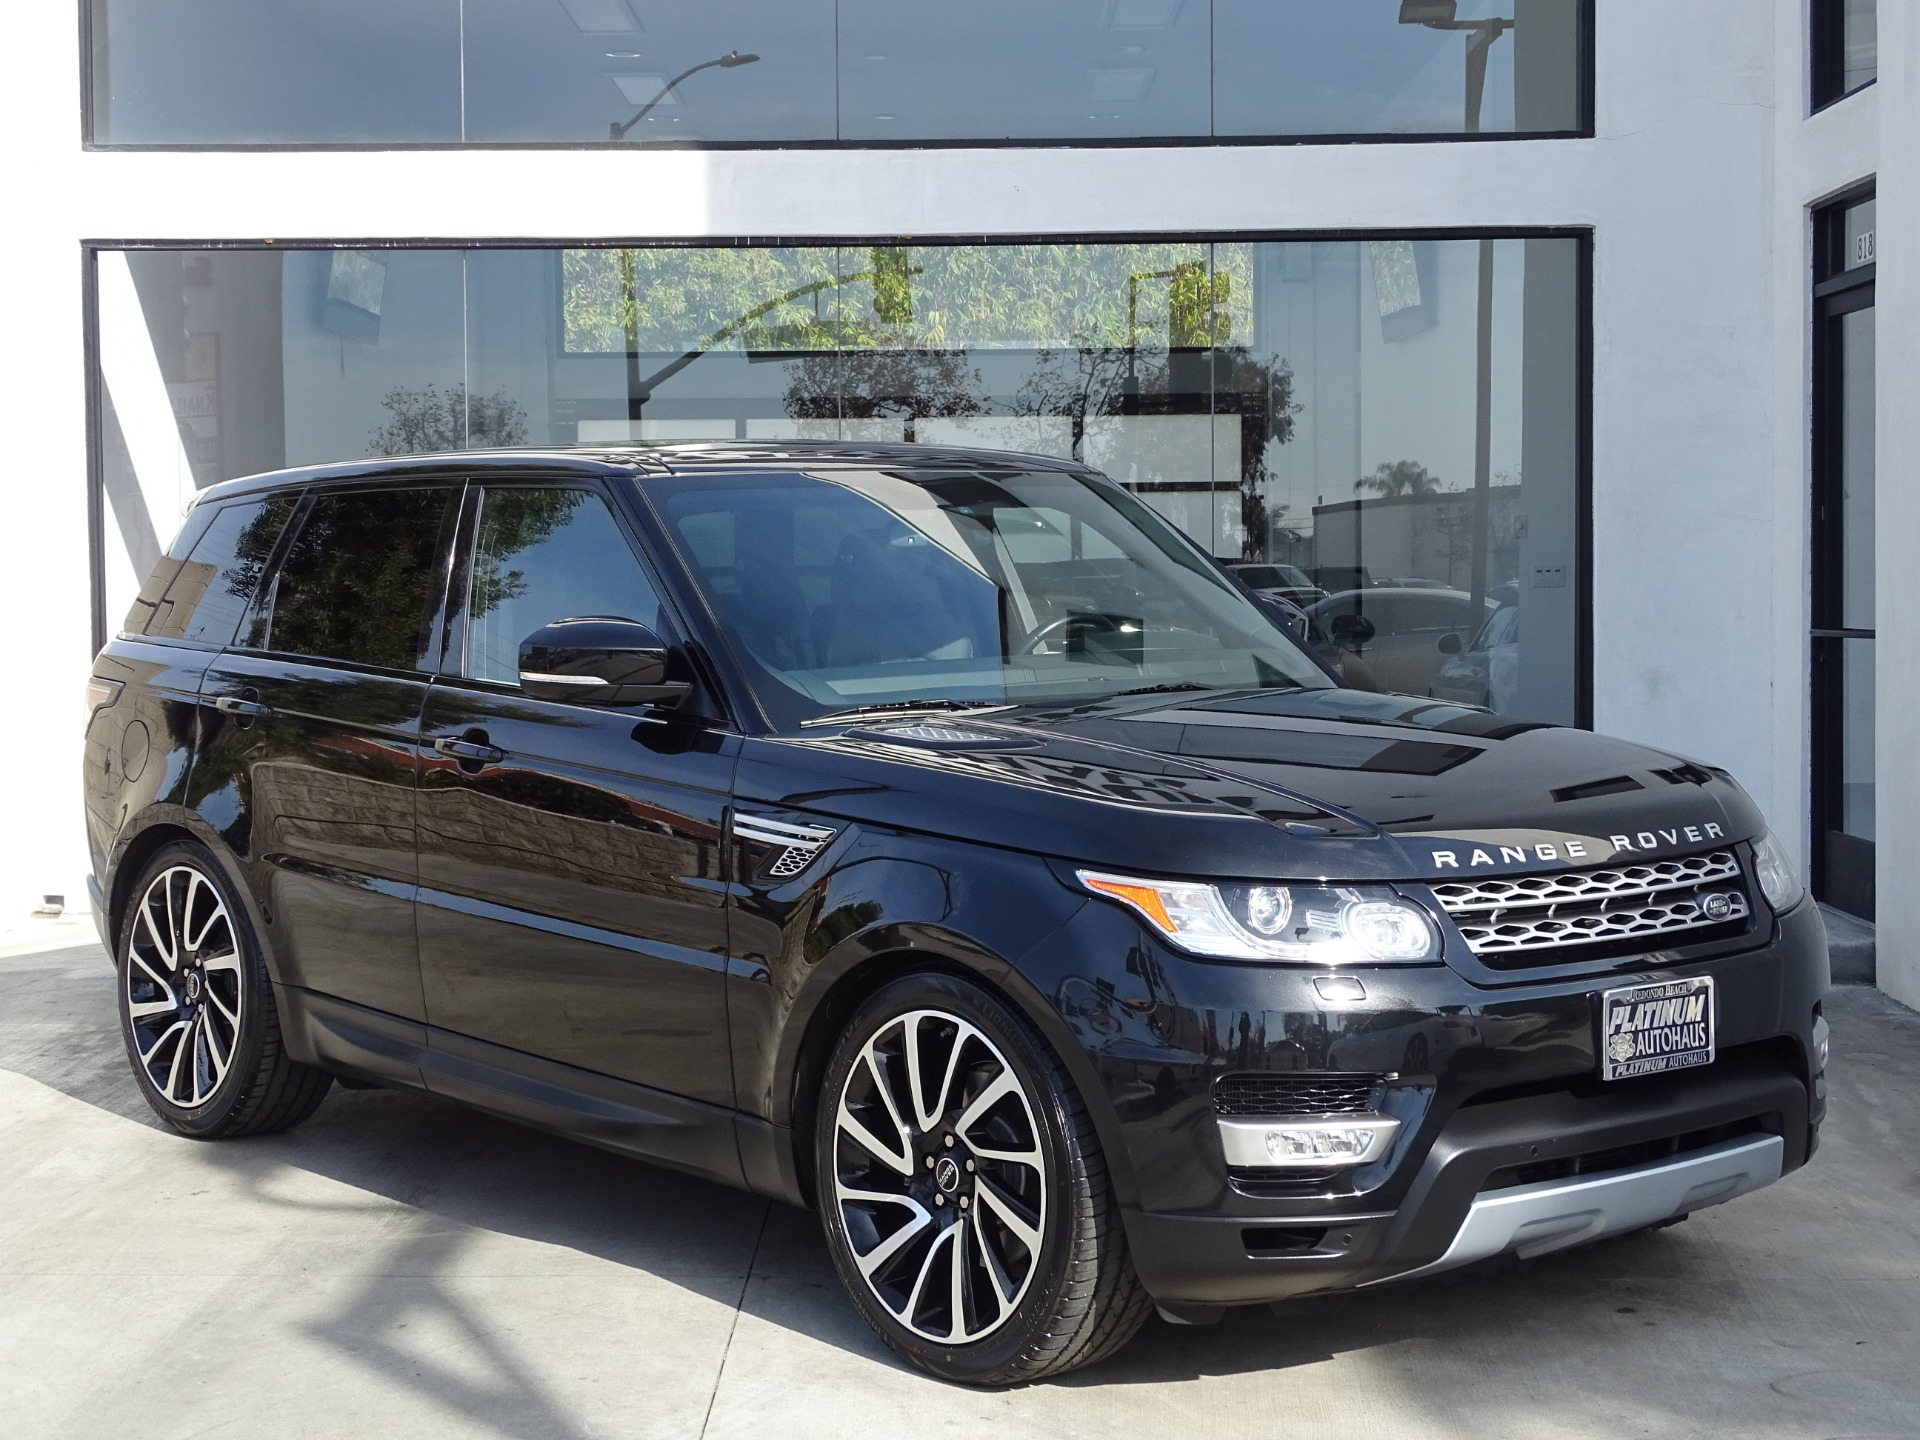 2014 land rover range rover sport hse stock 6047 for sale near redondo beach ca ca land - Land rover garage near me ...